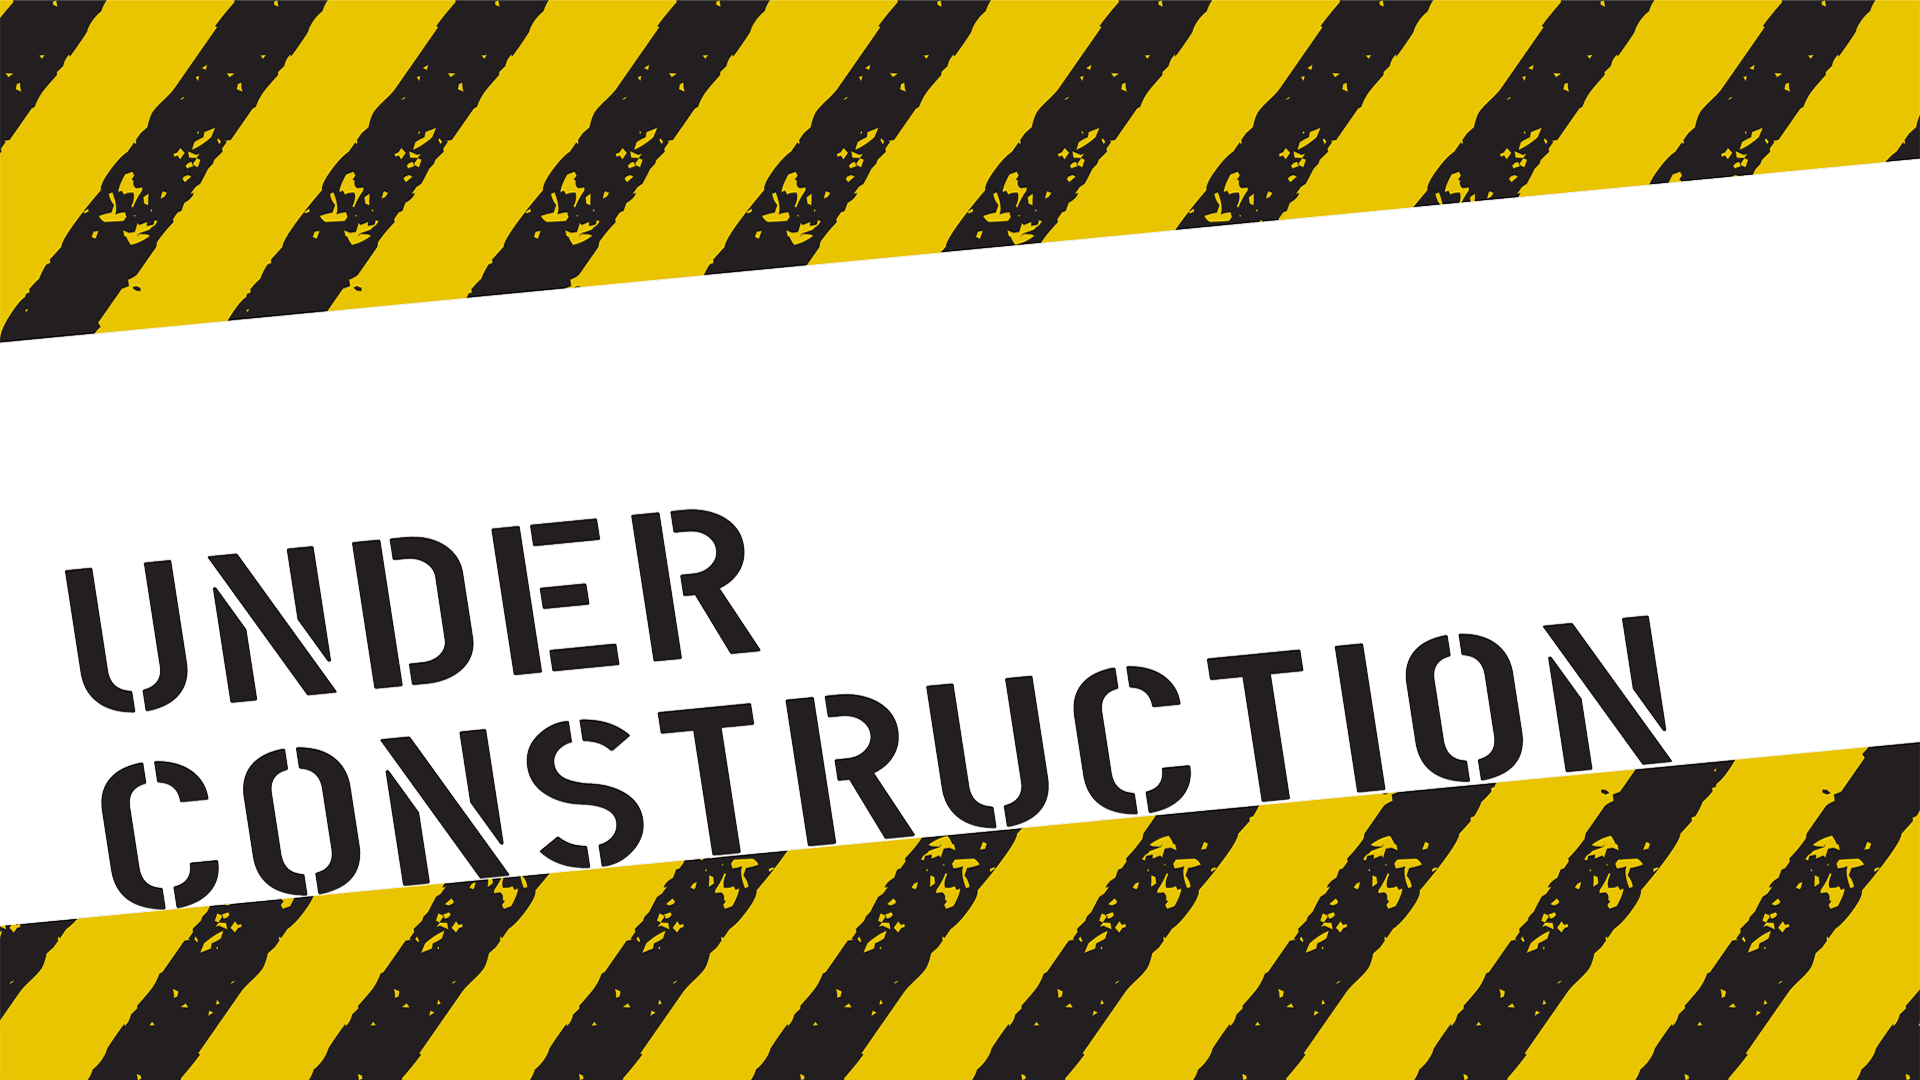 Construction border clip art clipart images gallery for free.